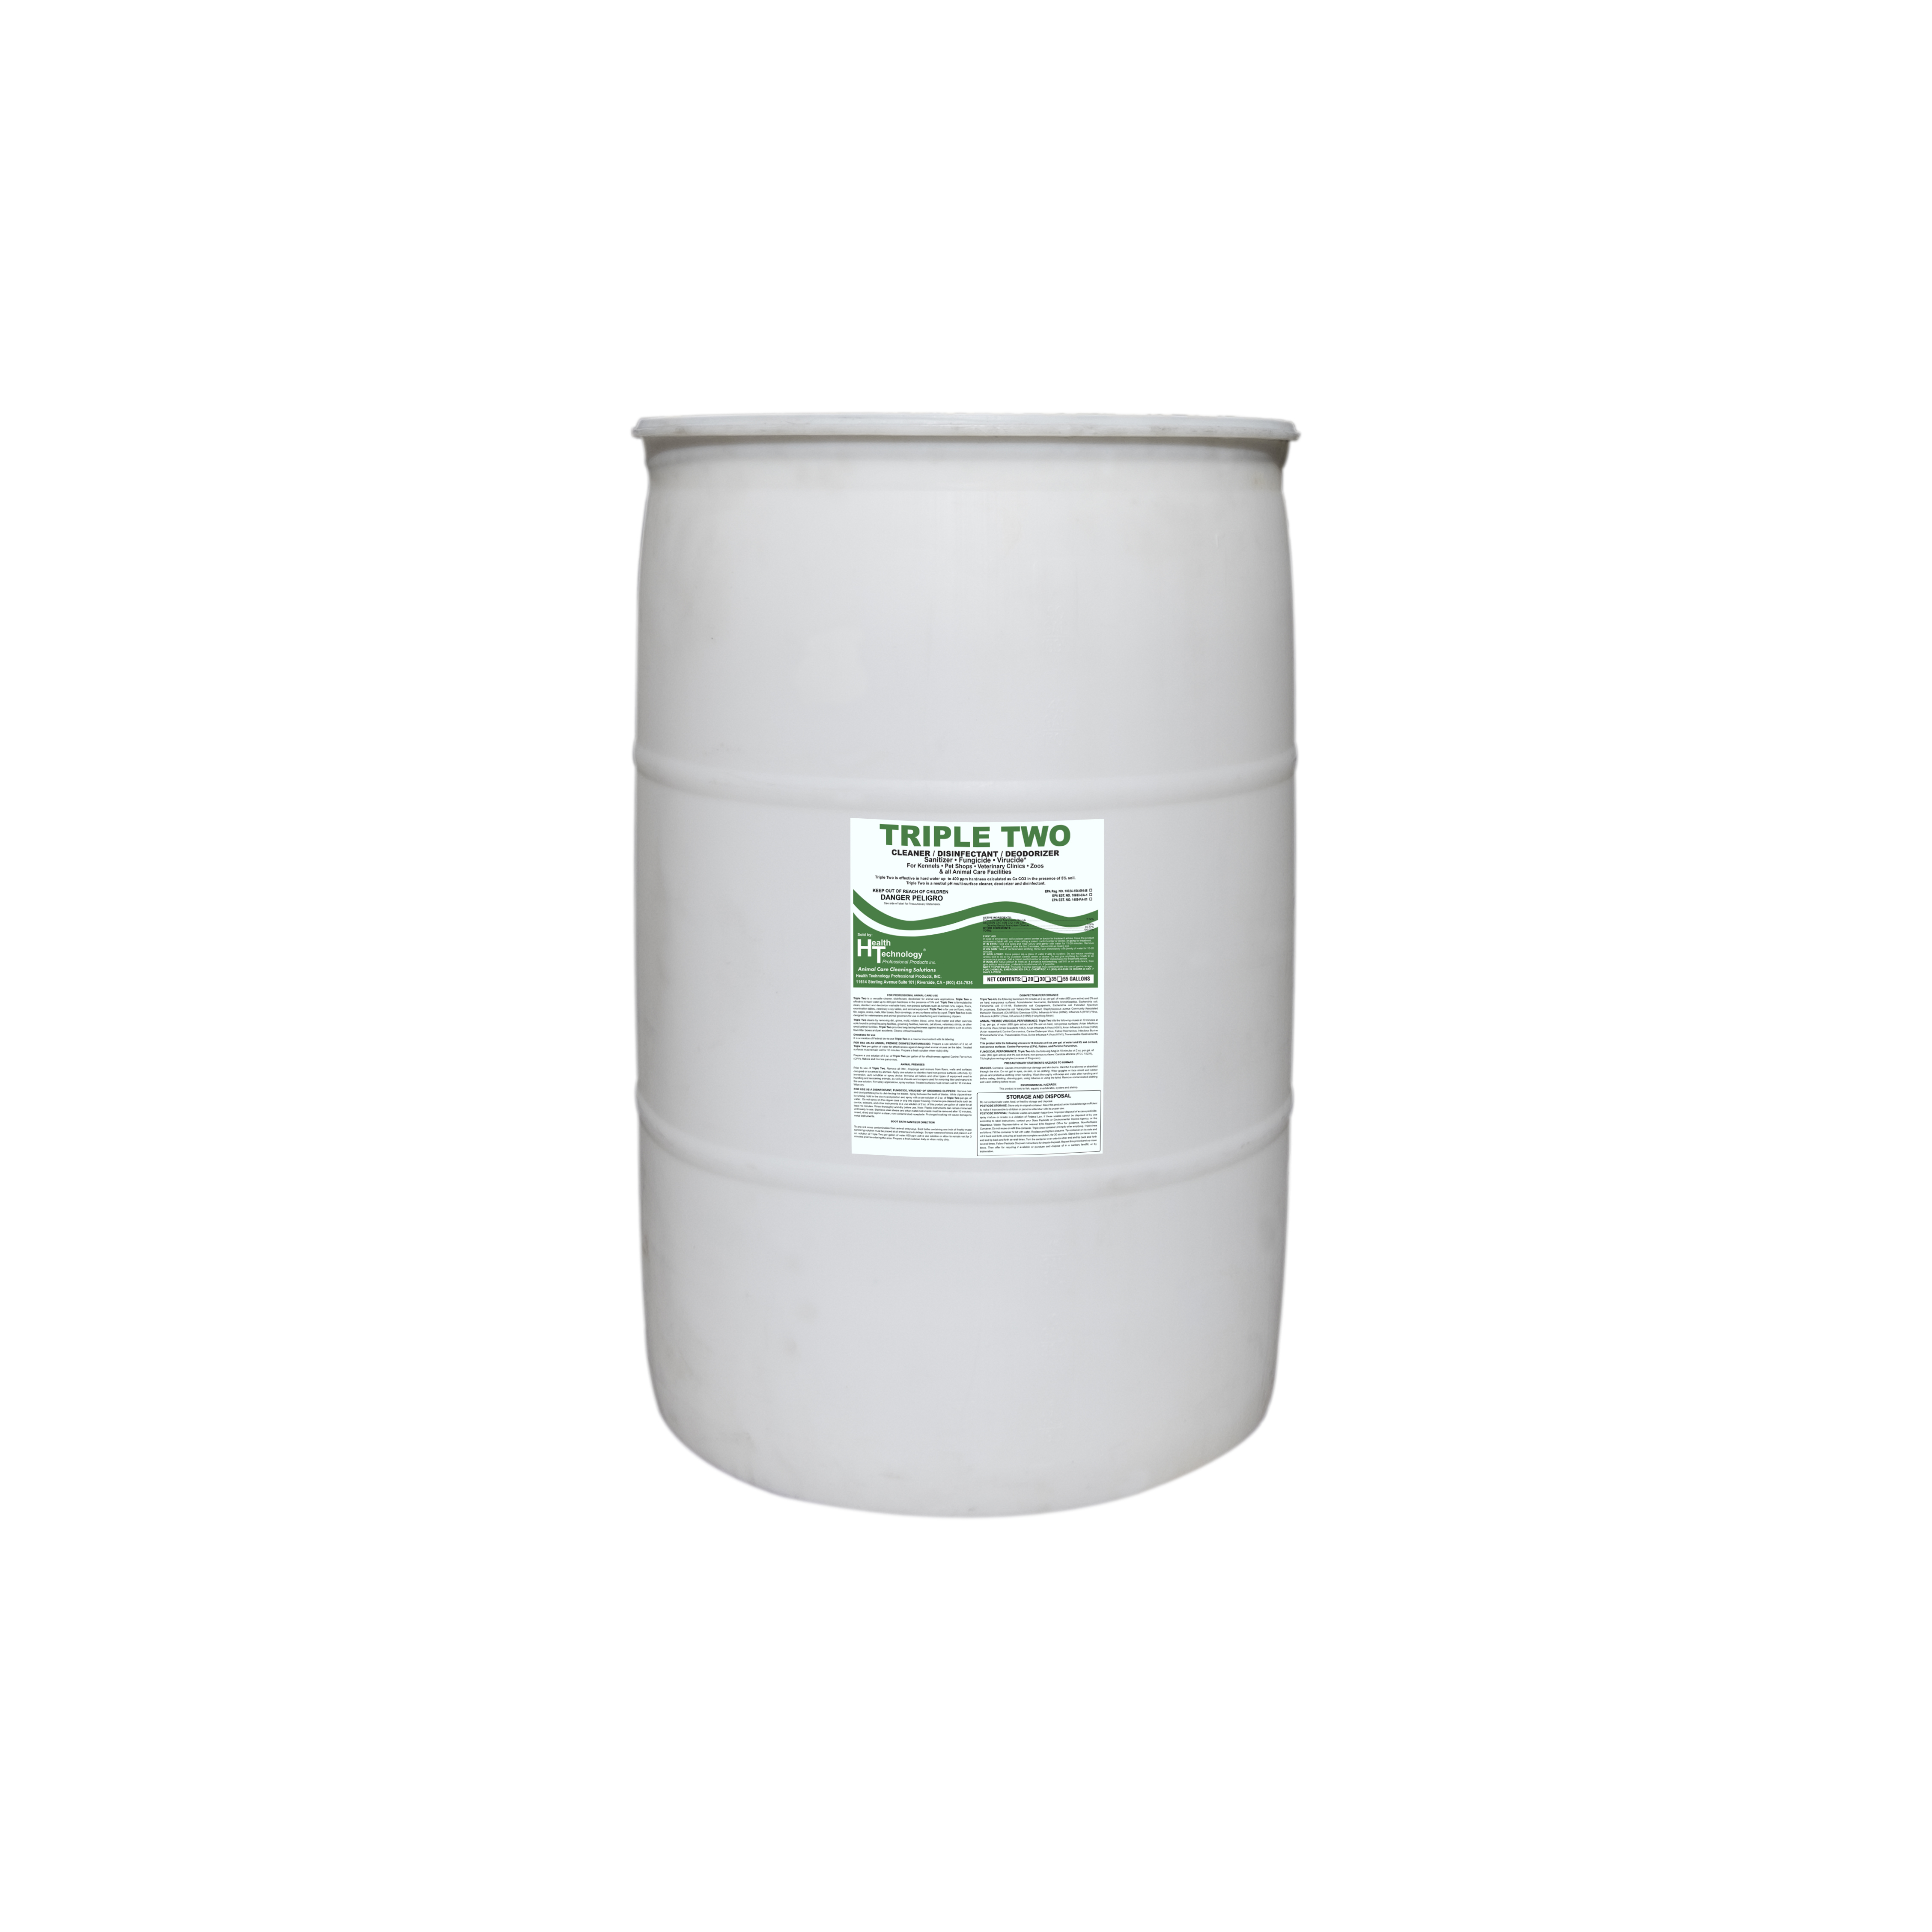 Triple Two Disinfectant Cleaner Deodorizer 55 Gallon Drum